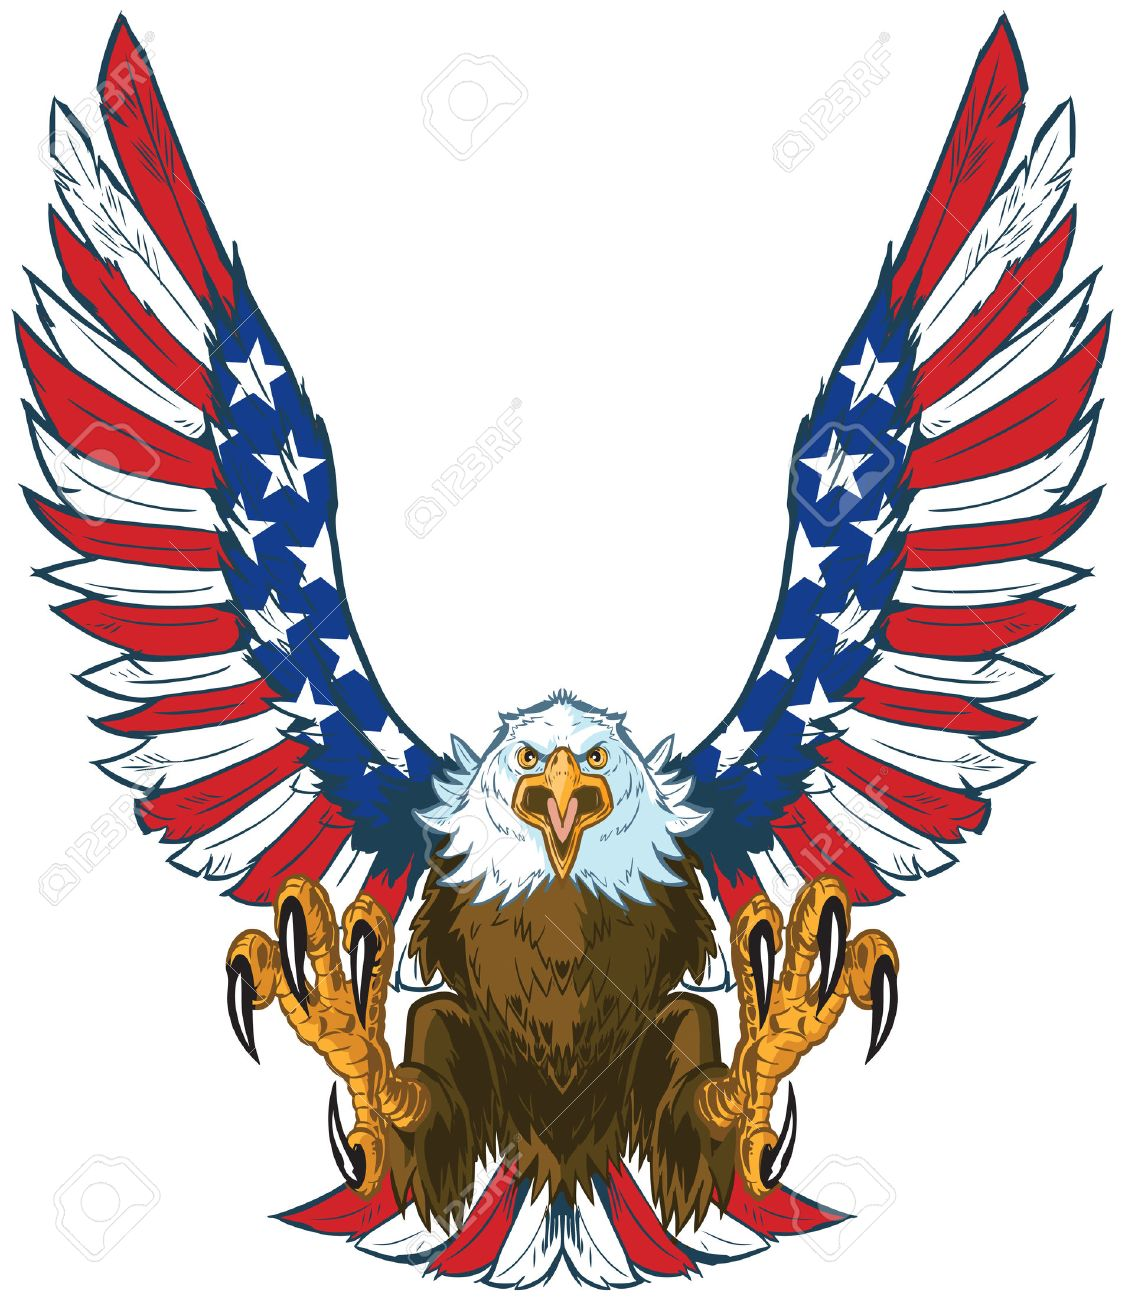 38 816 eagle stock vector illustration and royalty free eagle clipart rh 123rf com american eagle clipart free american flag eagle clipart